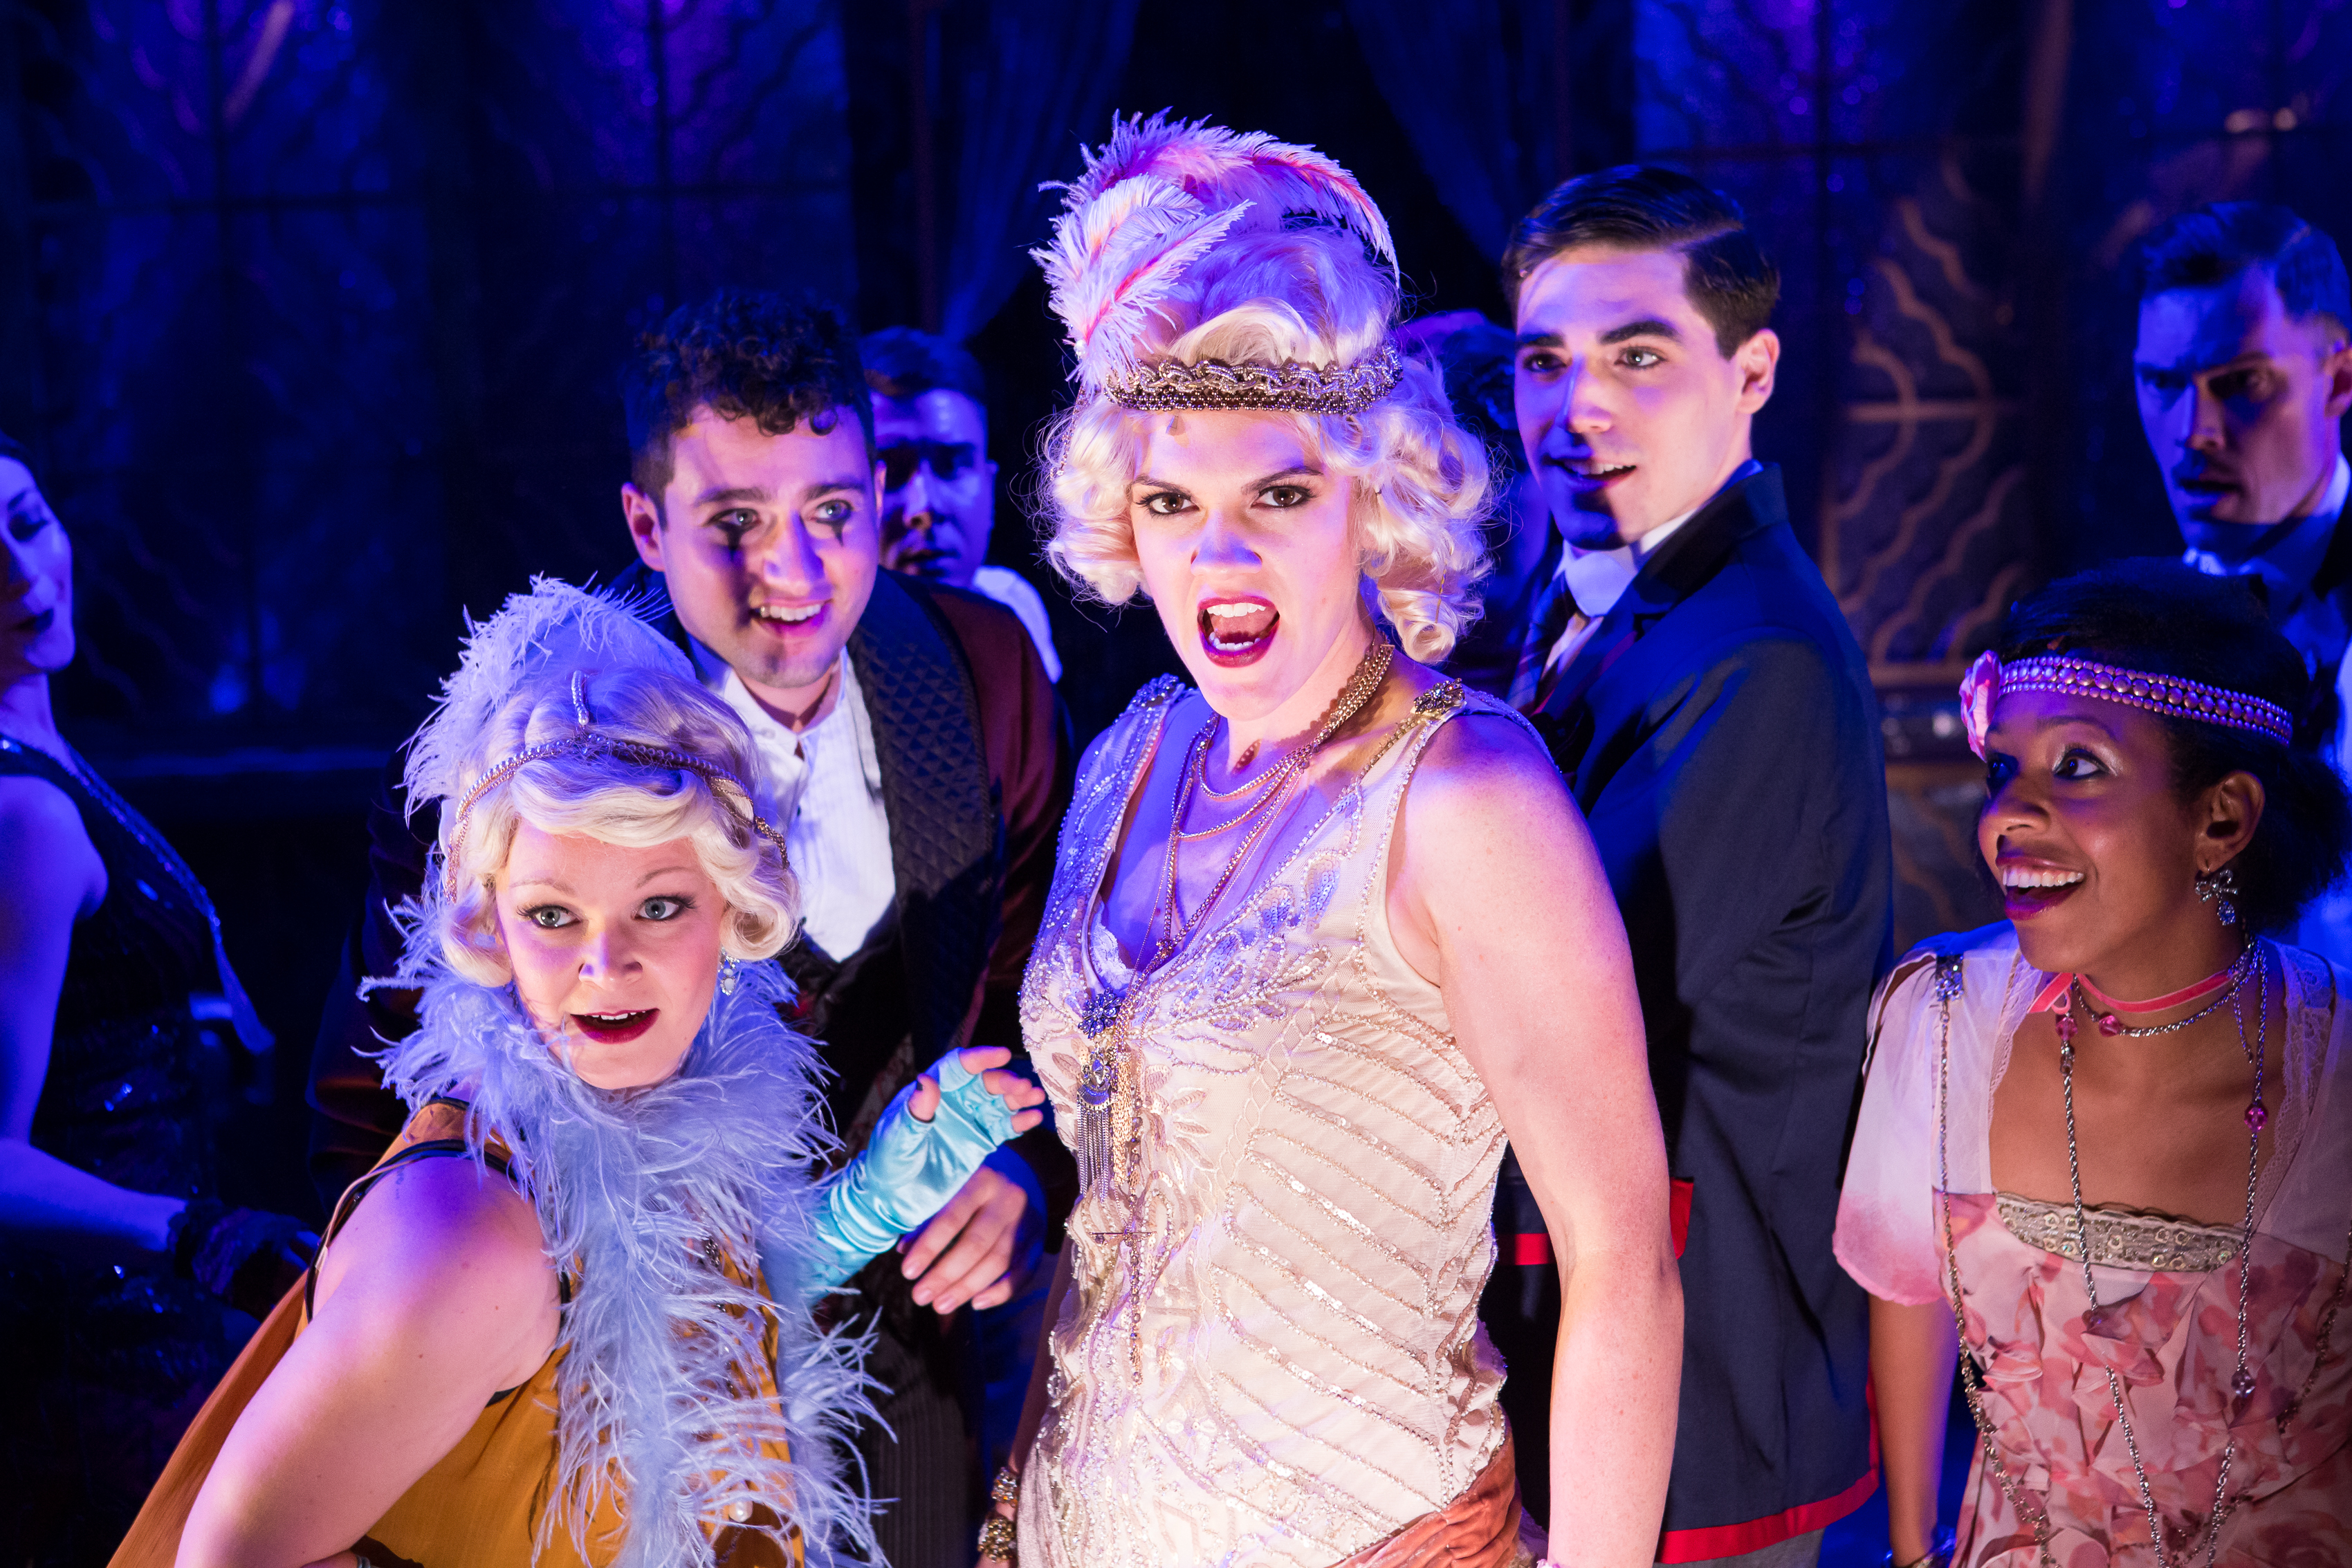 BWW Review: THE WILD PARTY at The Constellation Theatre